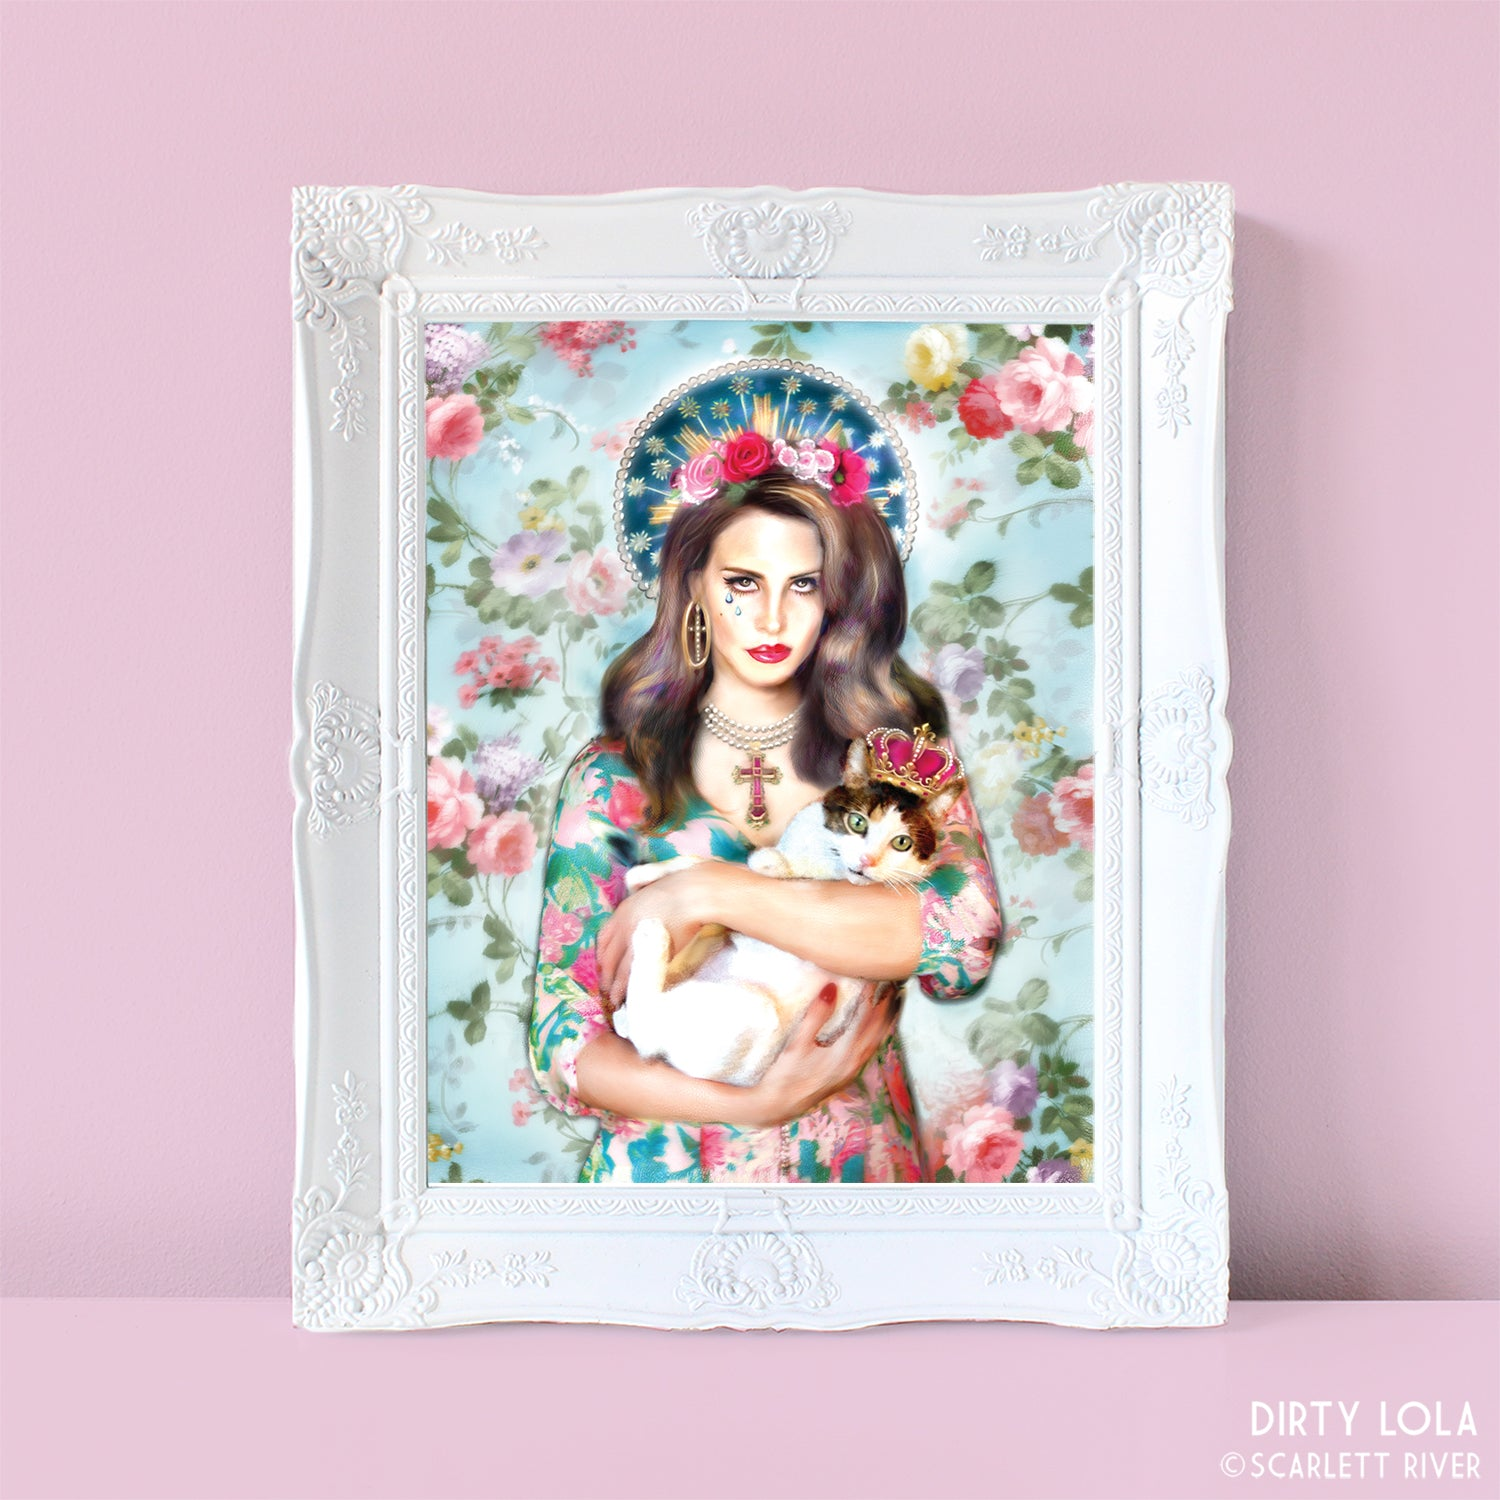 Our Lady Del Rey Art Print